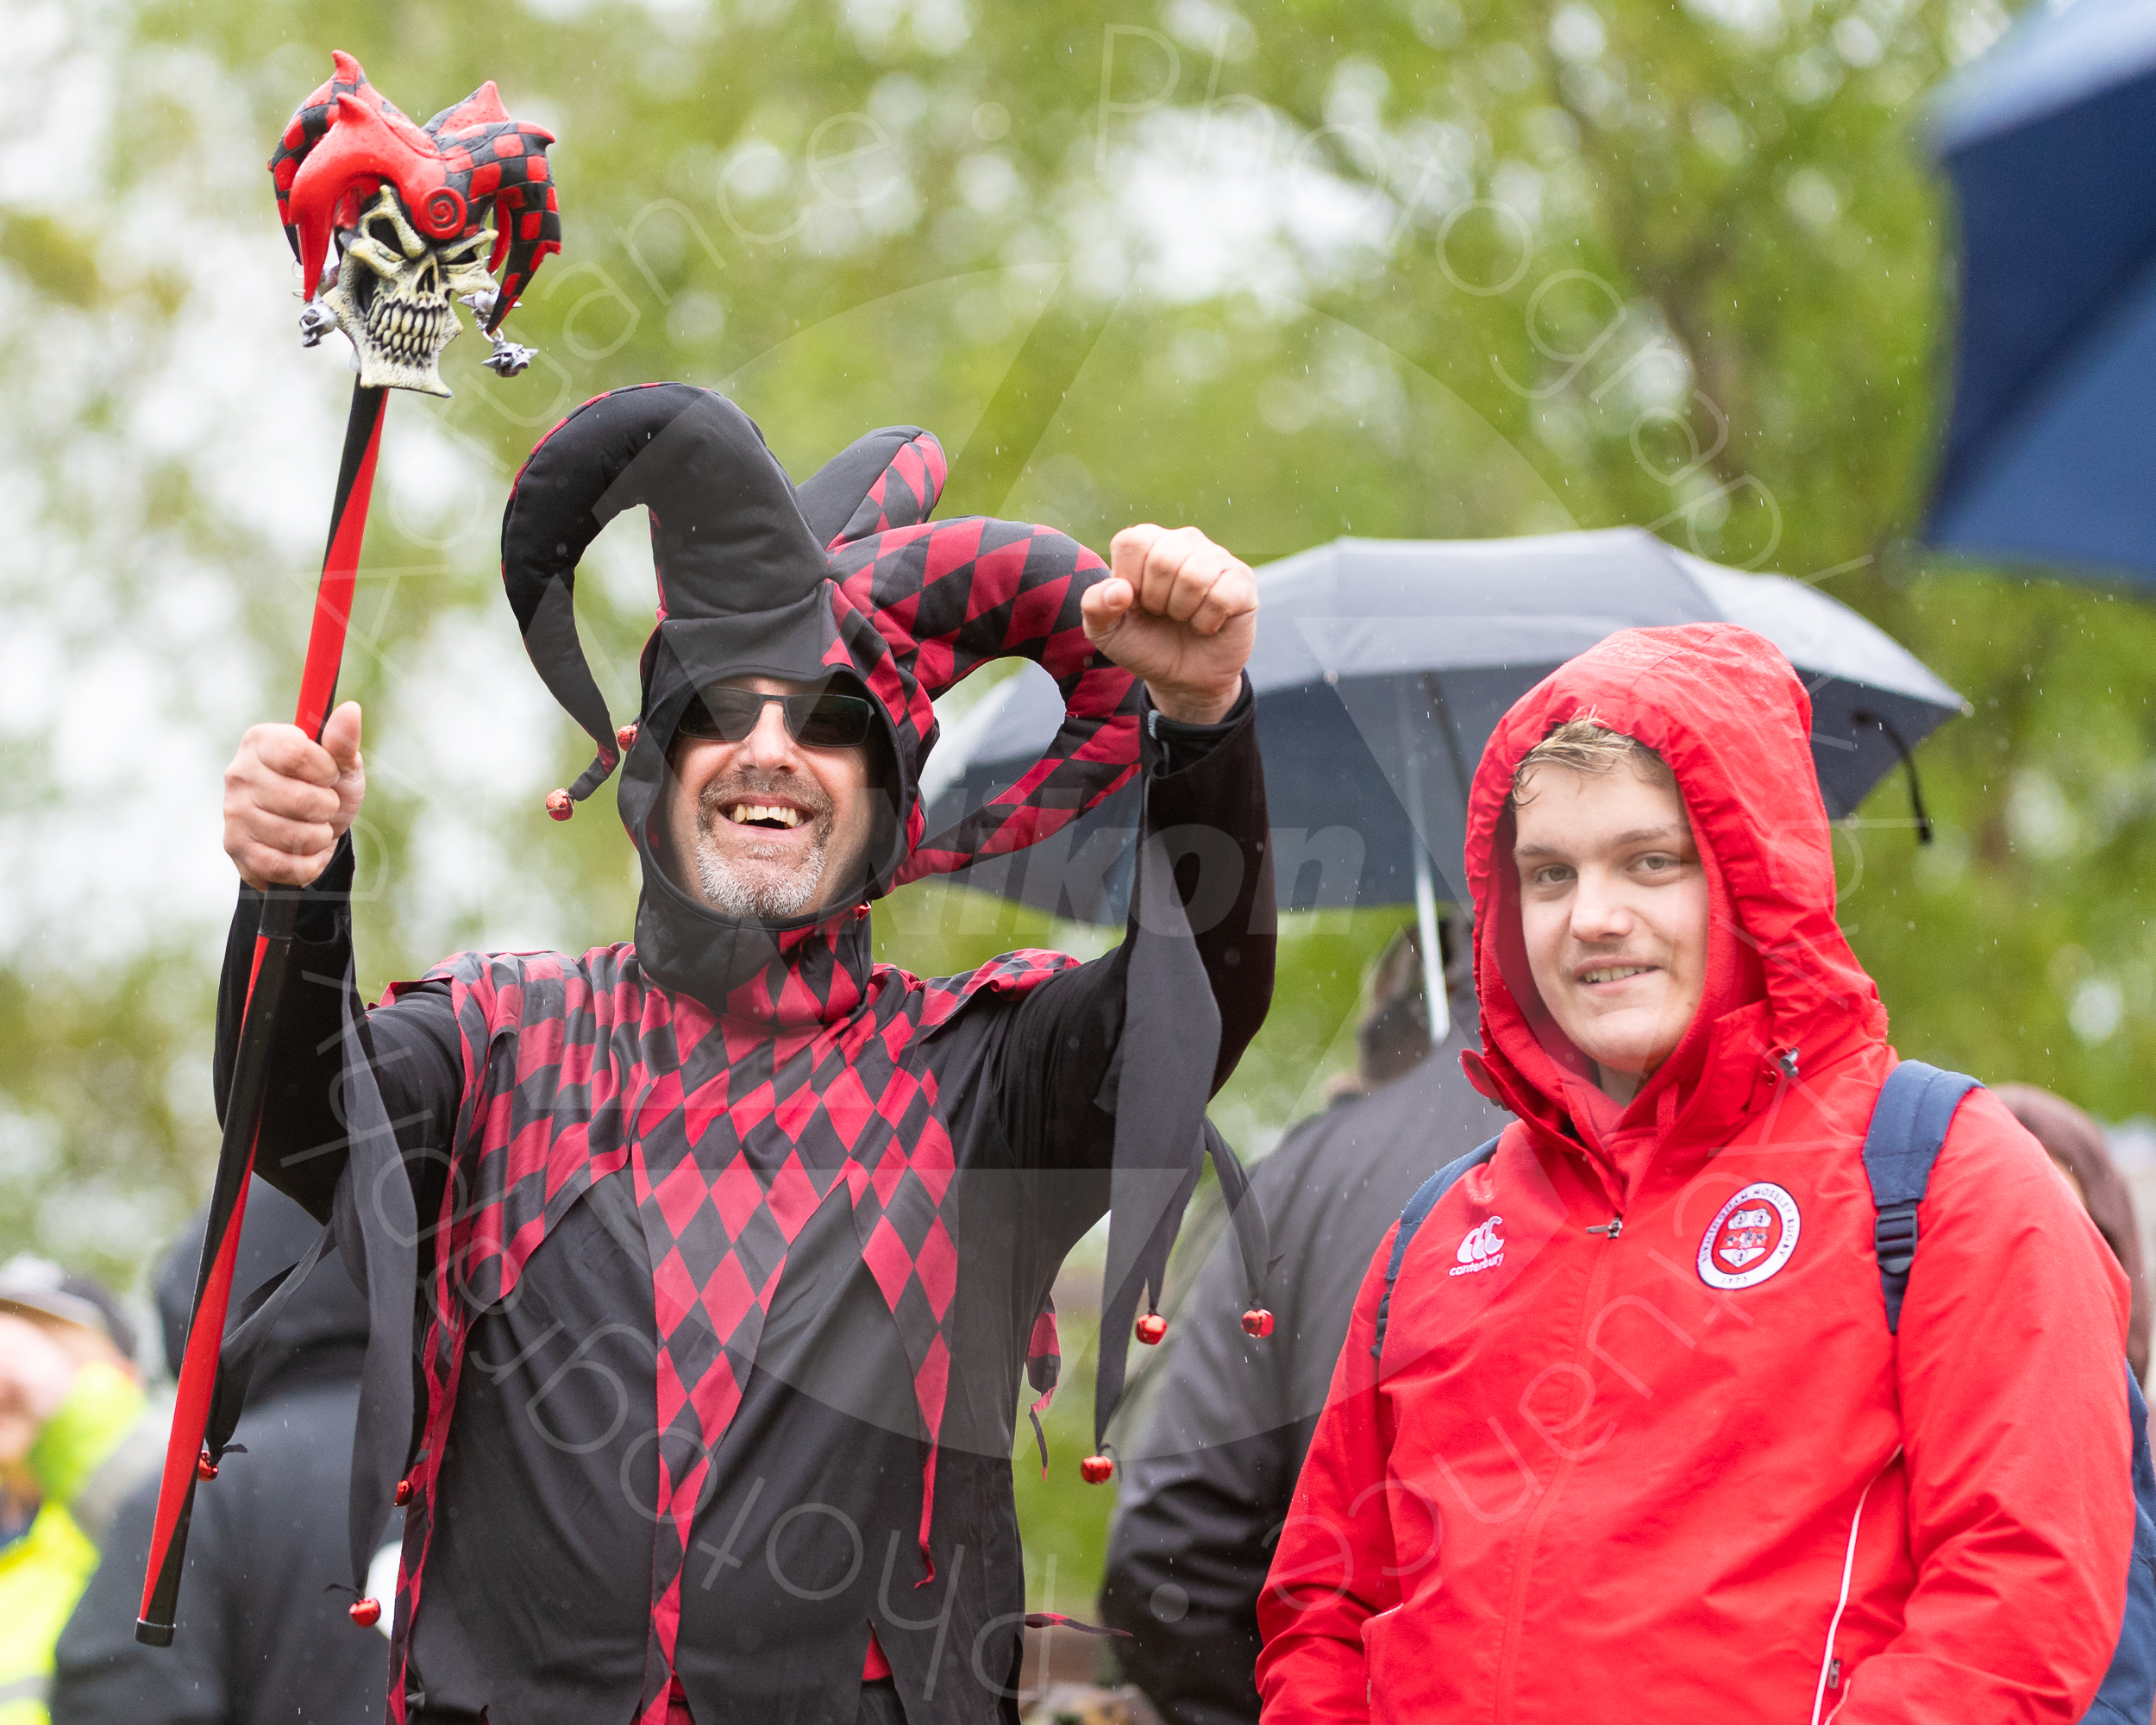 Mosley supporters determined to have fun (Photo: Iain Frankish, Actuance Photography)